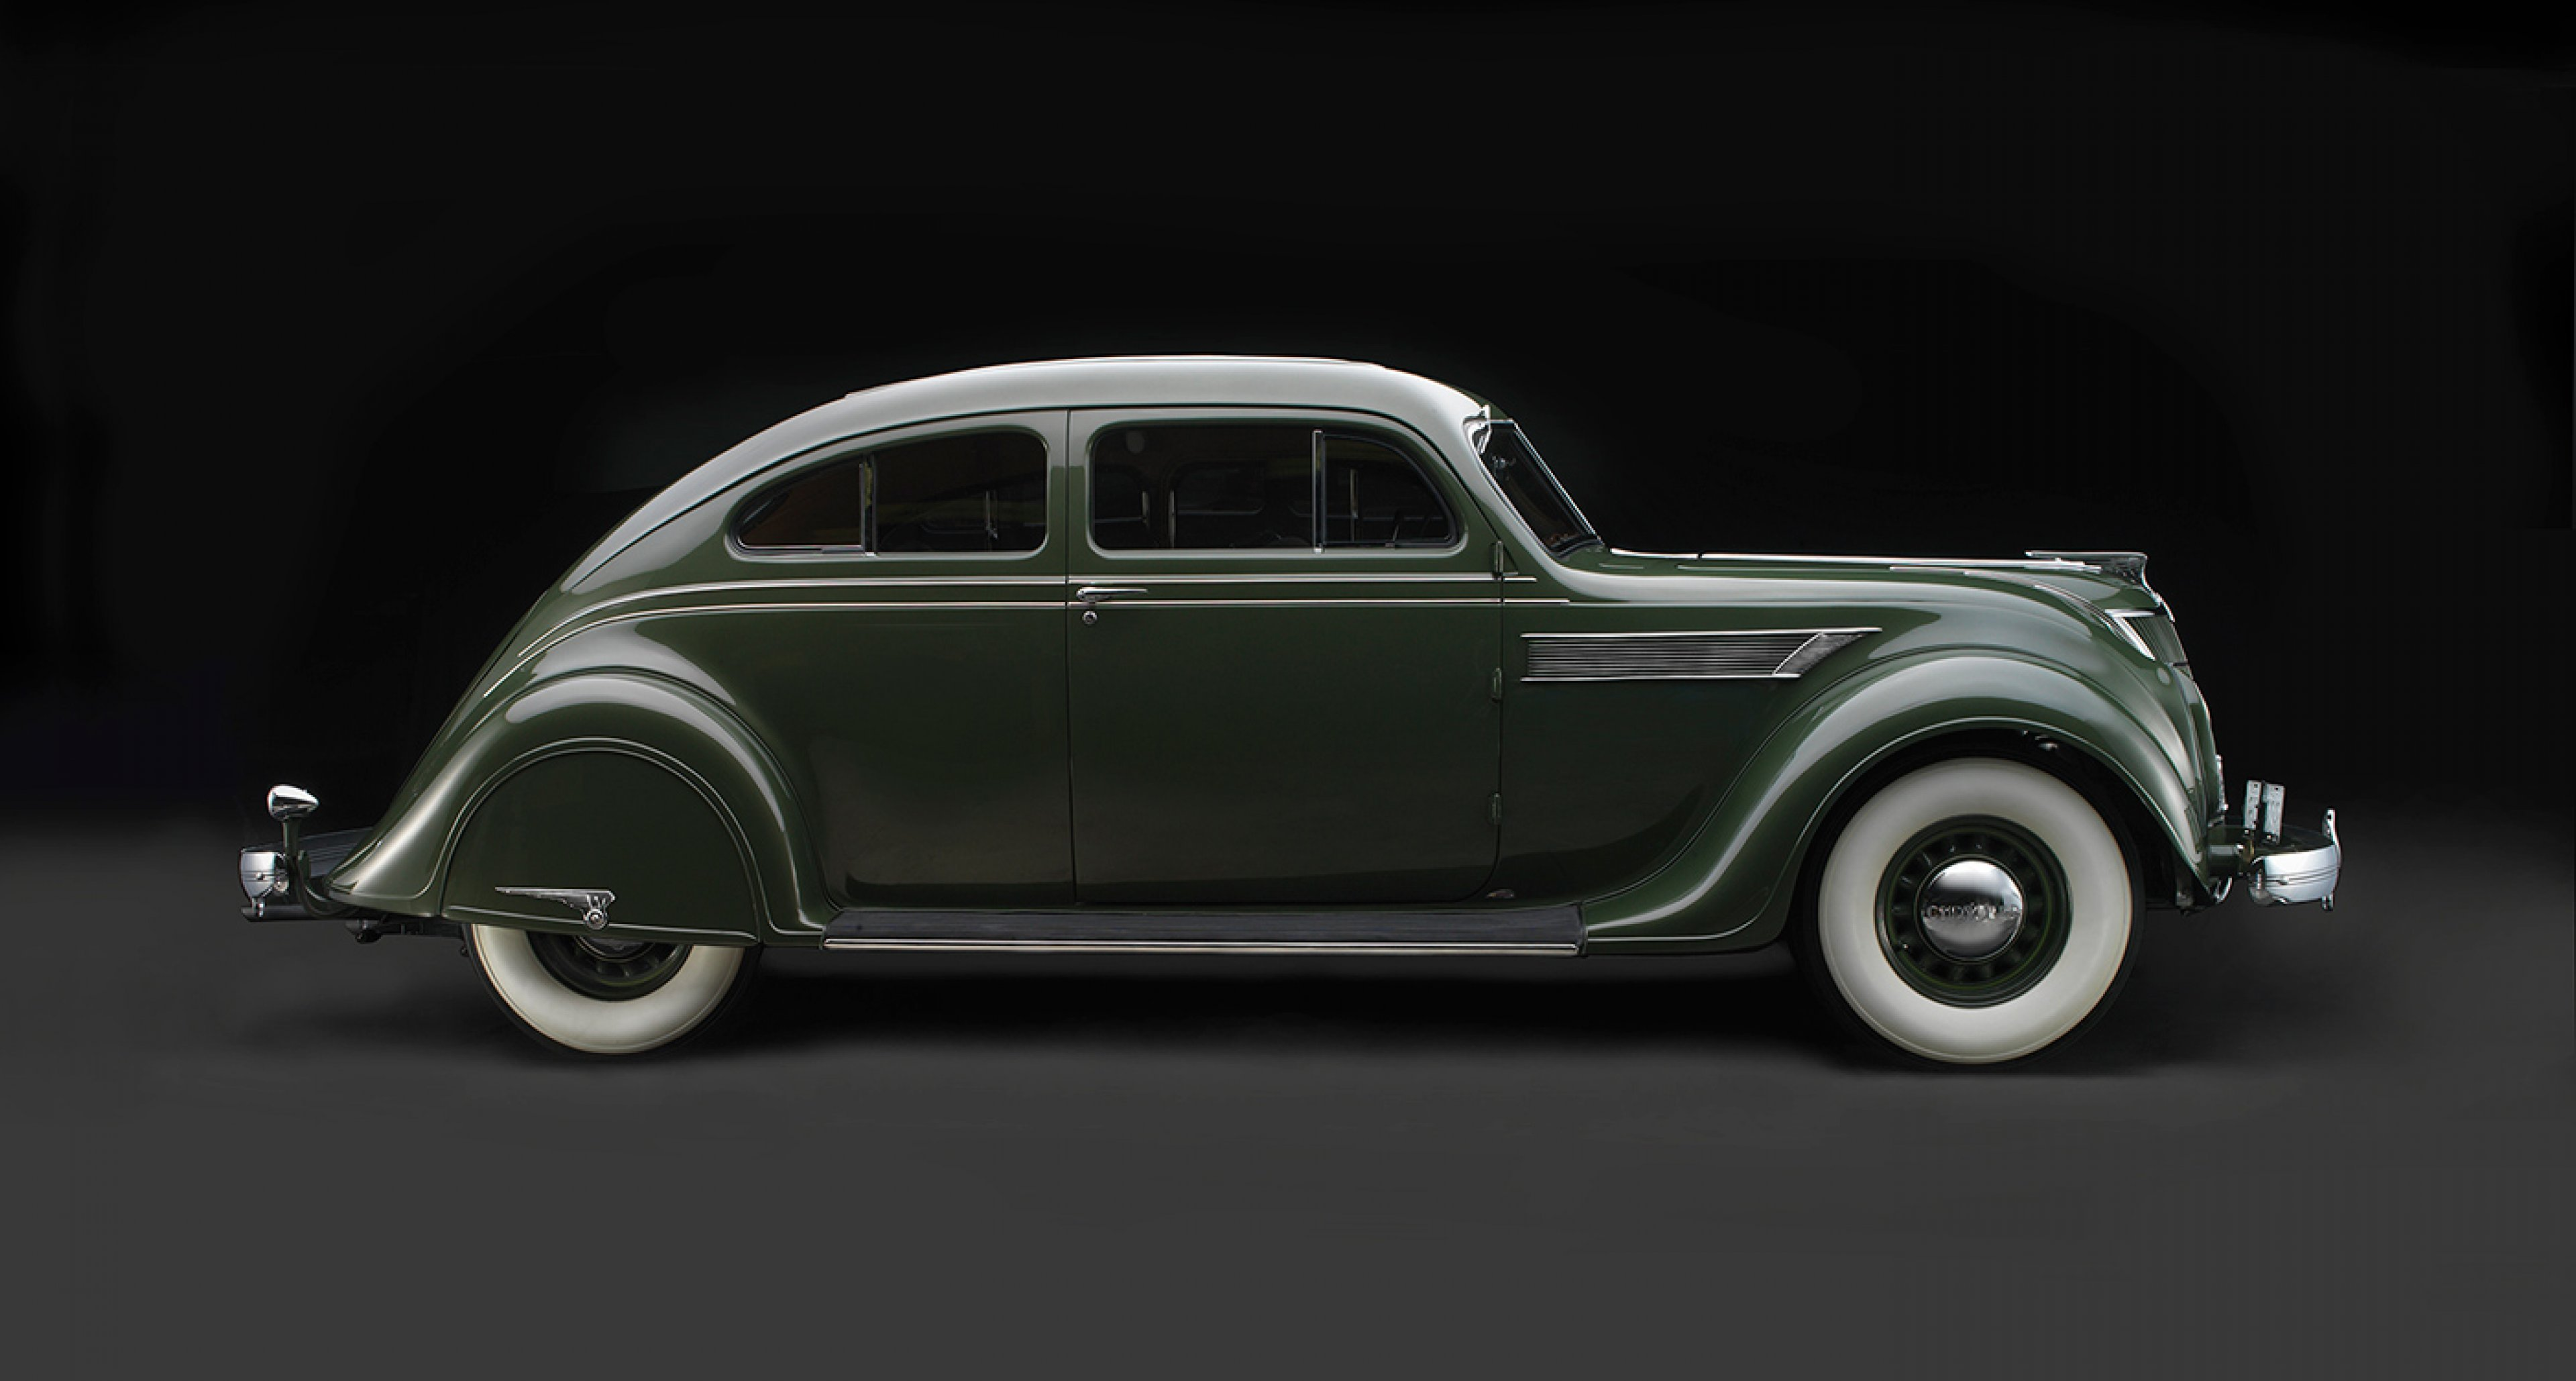 Chrysler Imperial Model C-2 Airflow, 1935, Collection of John and Lynn Heimerl, Suffolk, Va.; Photo © 2016 Peter Harholdt